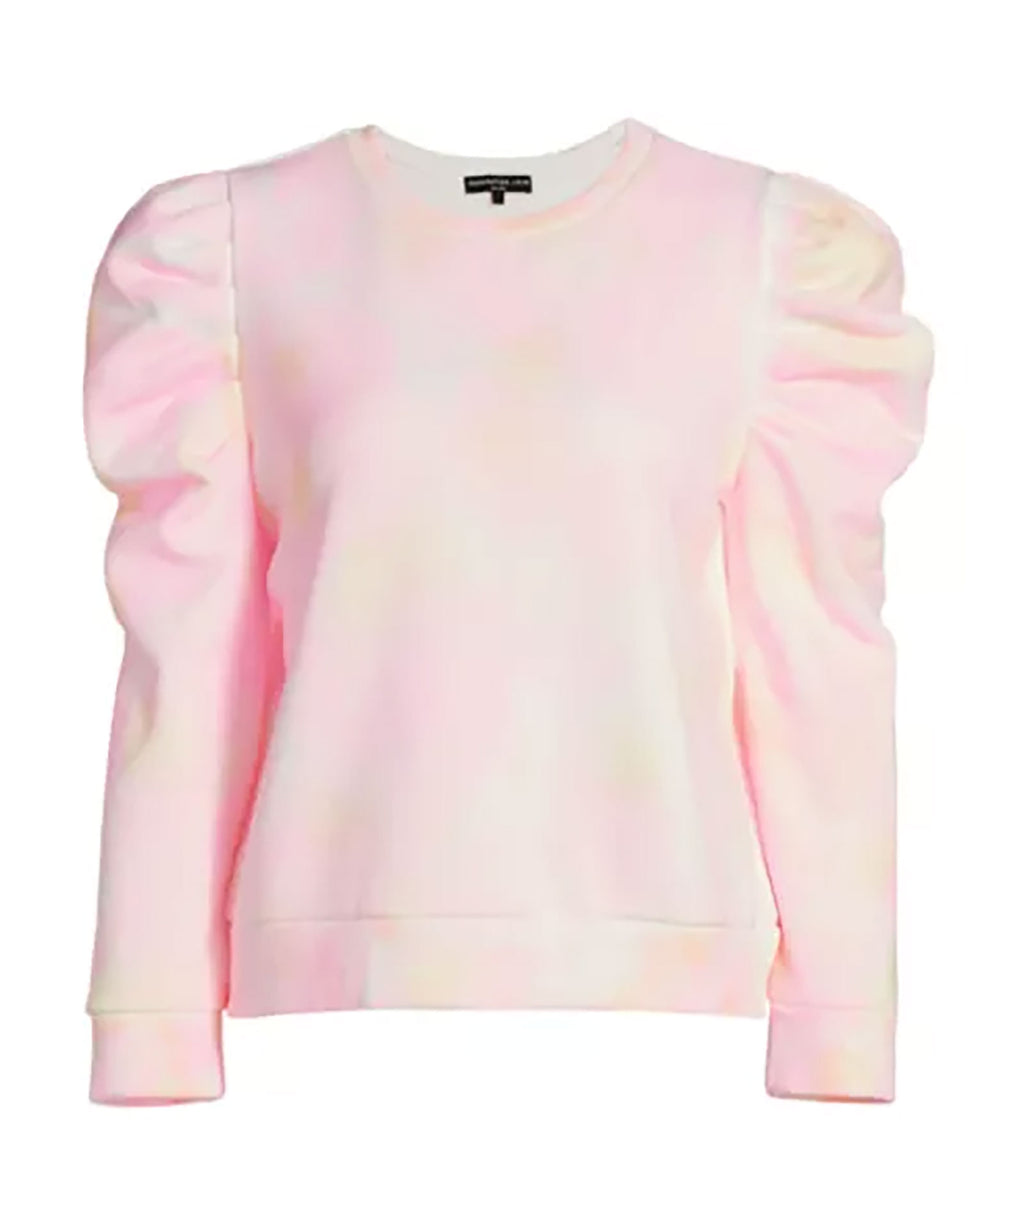 Generation Love Women Pearl Neon Tie-Dye Sweatshirt